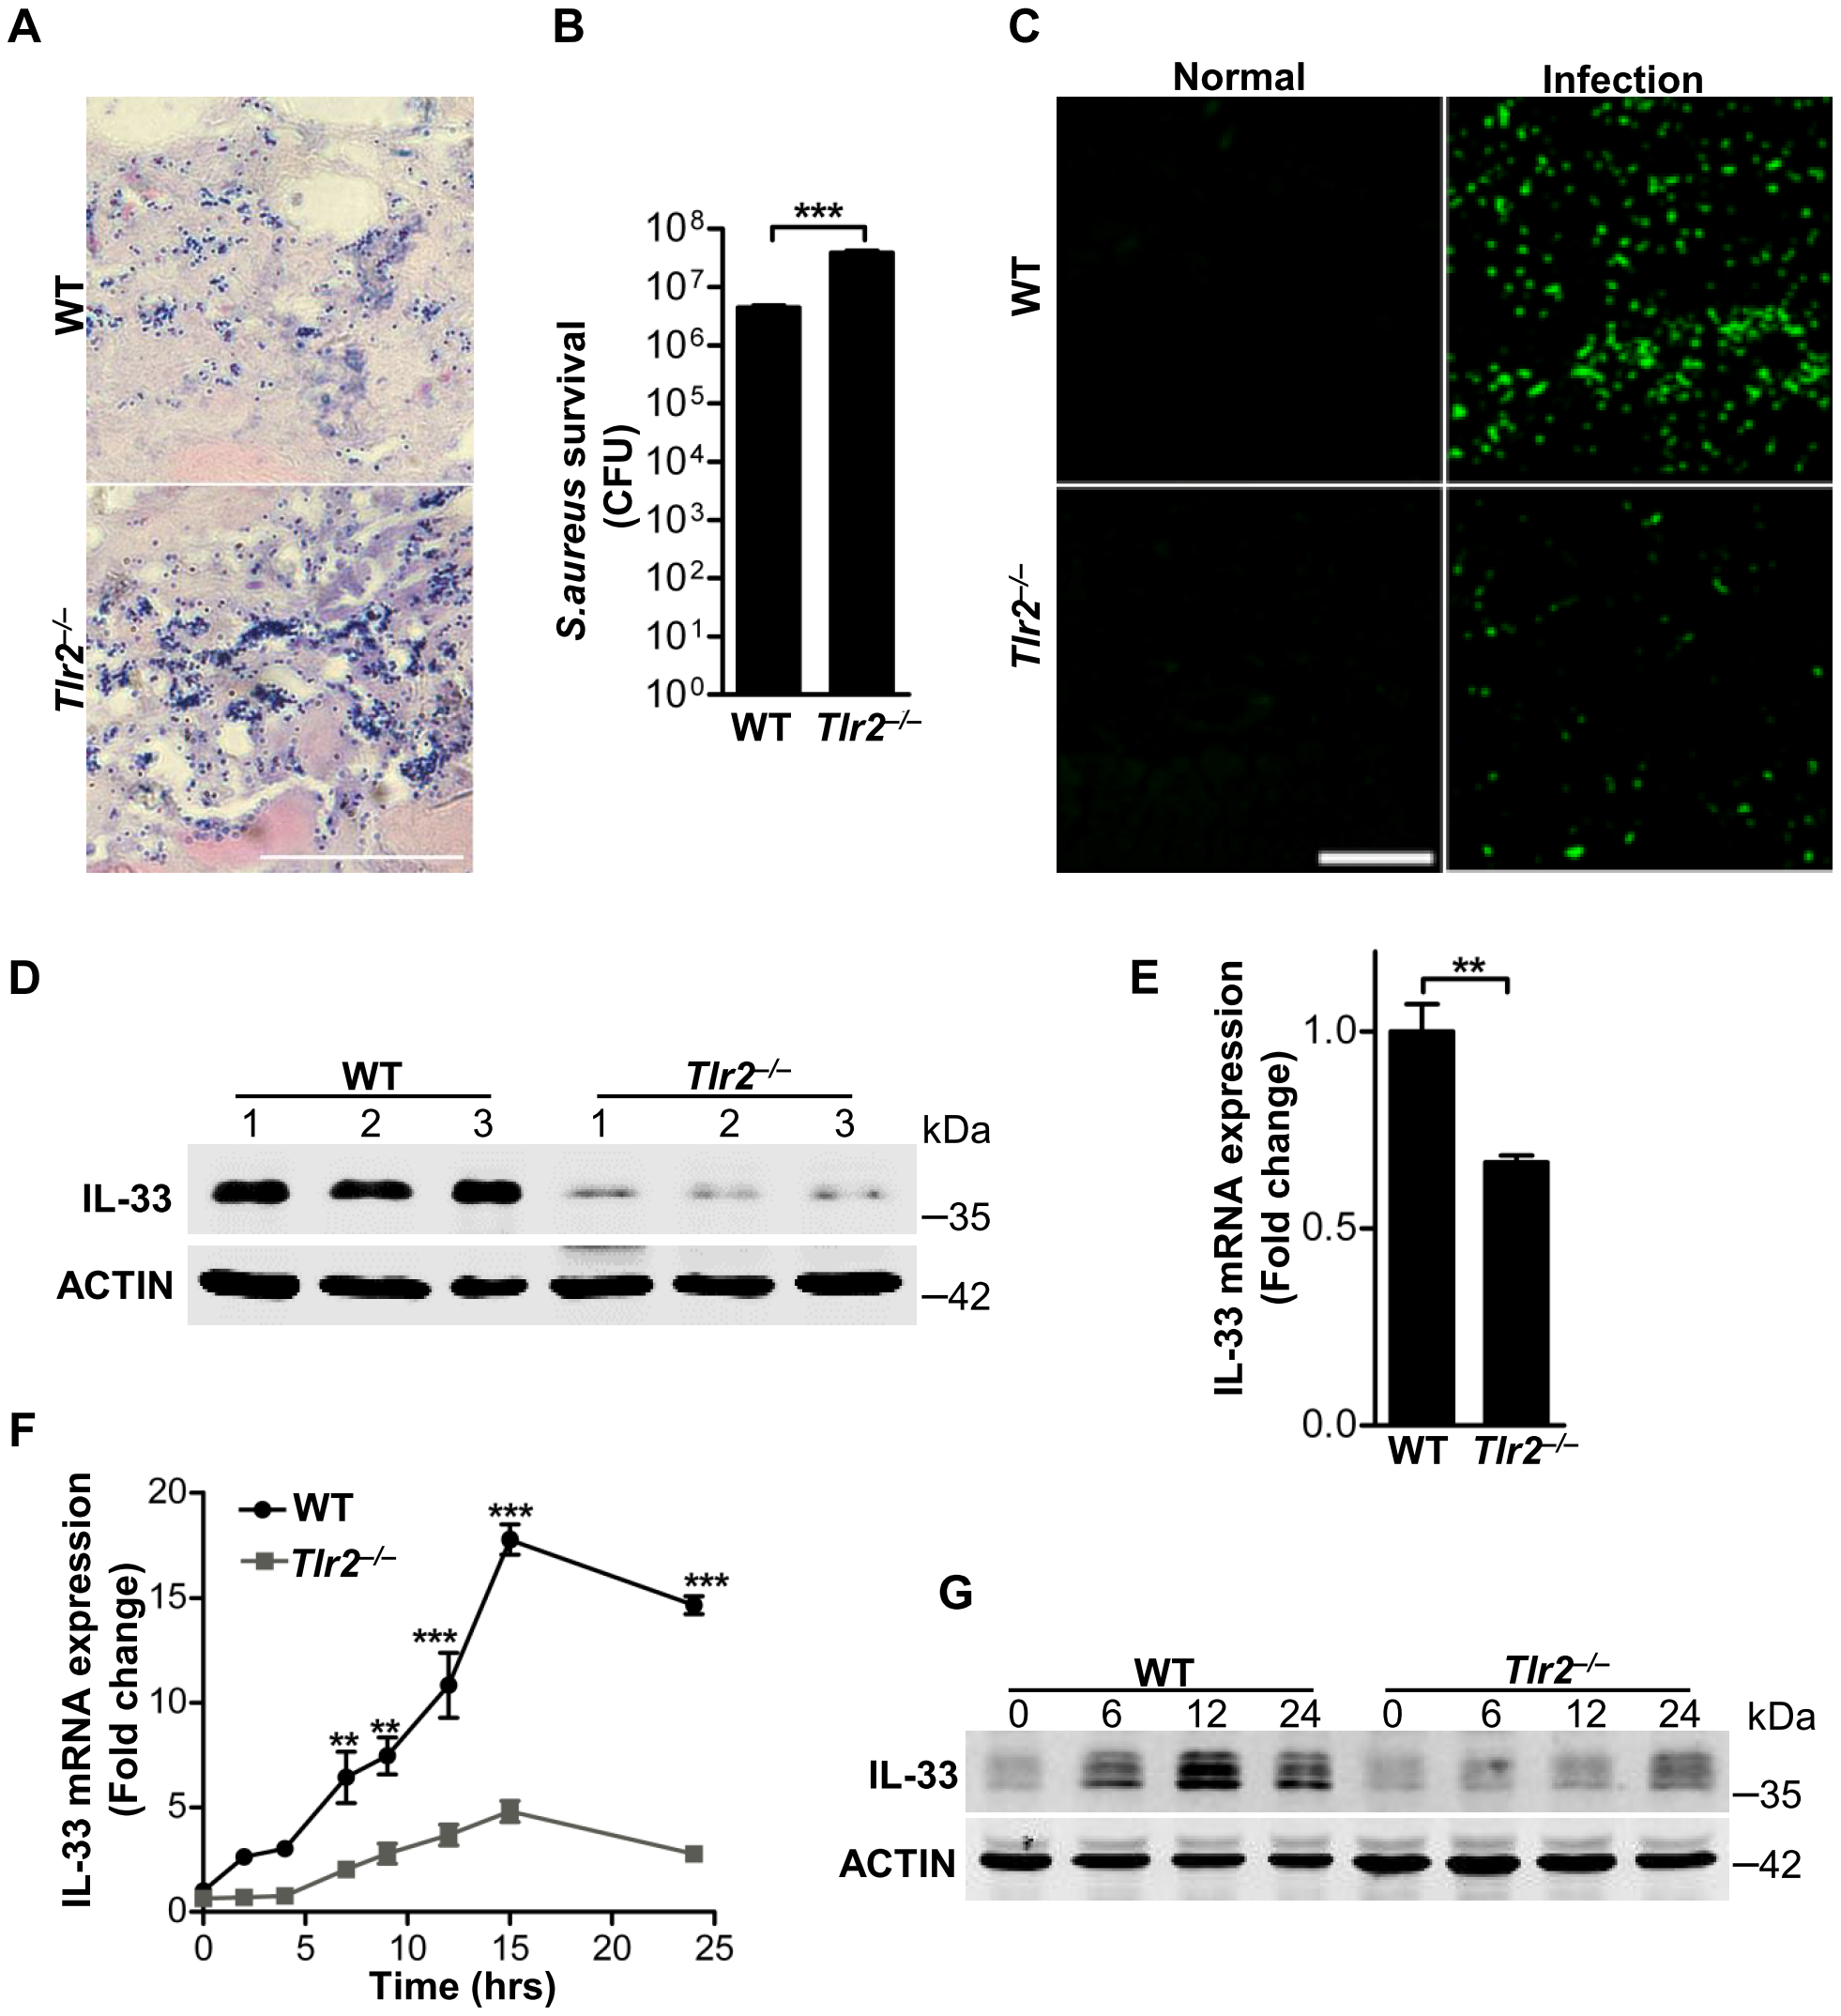 TLR2 is required for <i>Staphylococcus aureus</i> to induce IL-33.